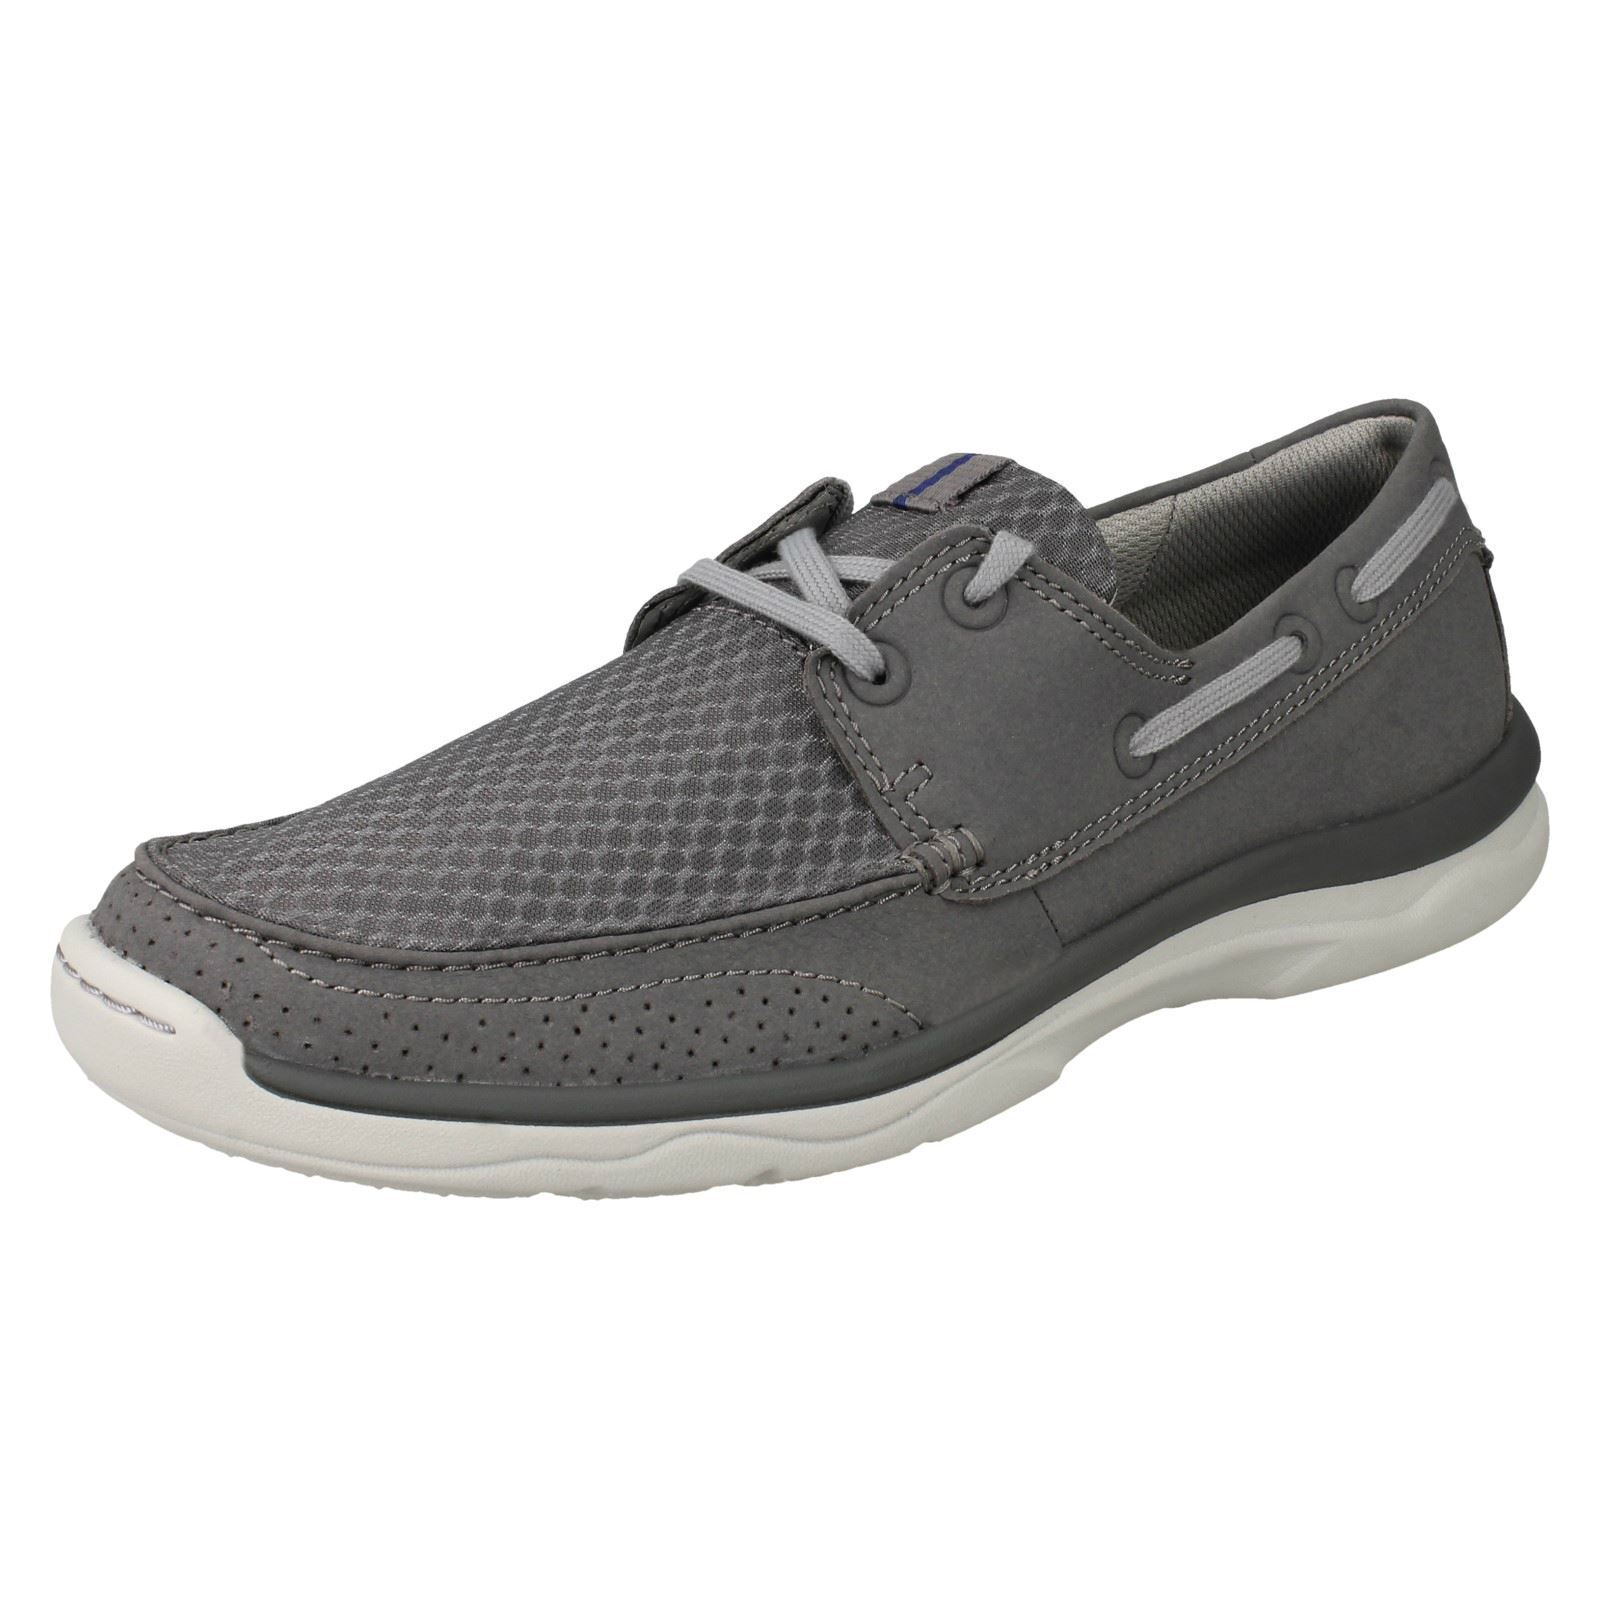 Mens Clarks Cloudsteppers Lace Up Casual schuhe 'Marus Edge'      |  | Für Ihre Wahl